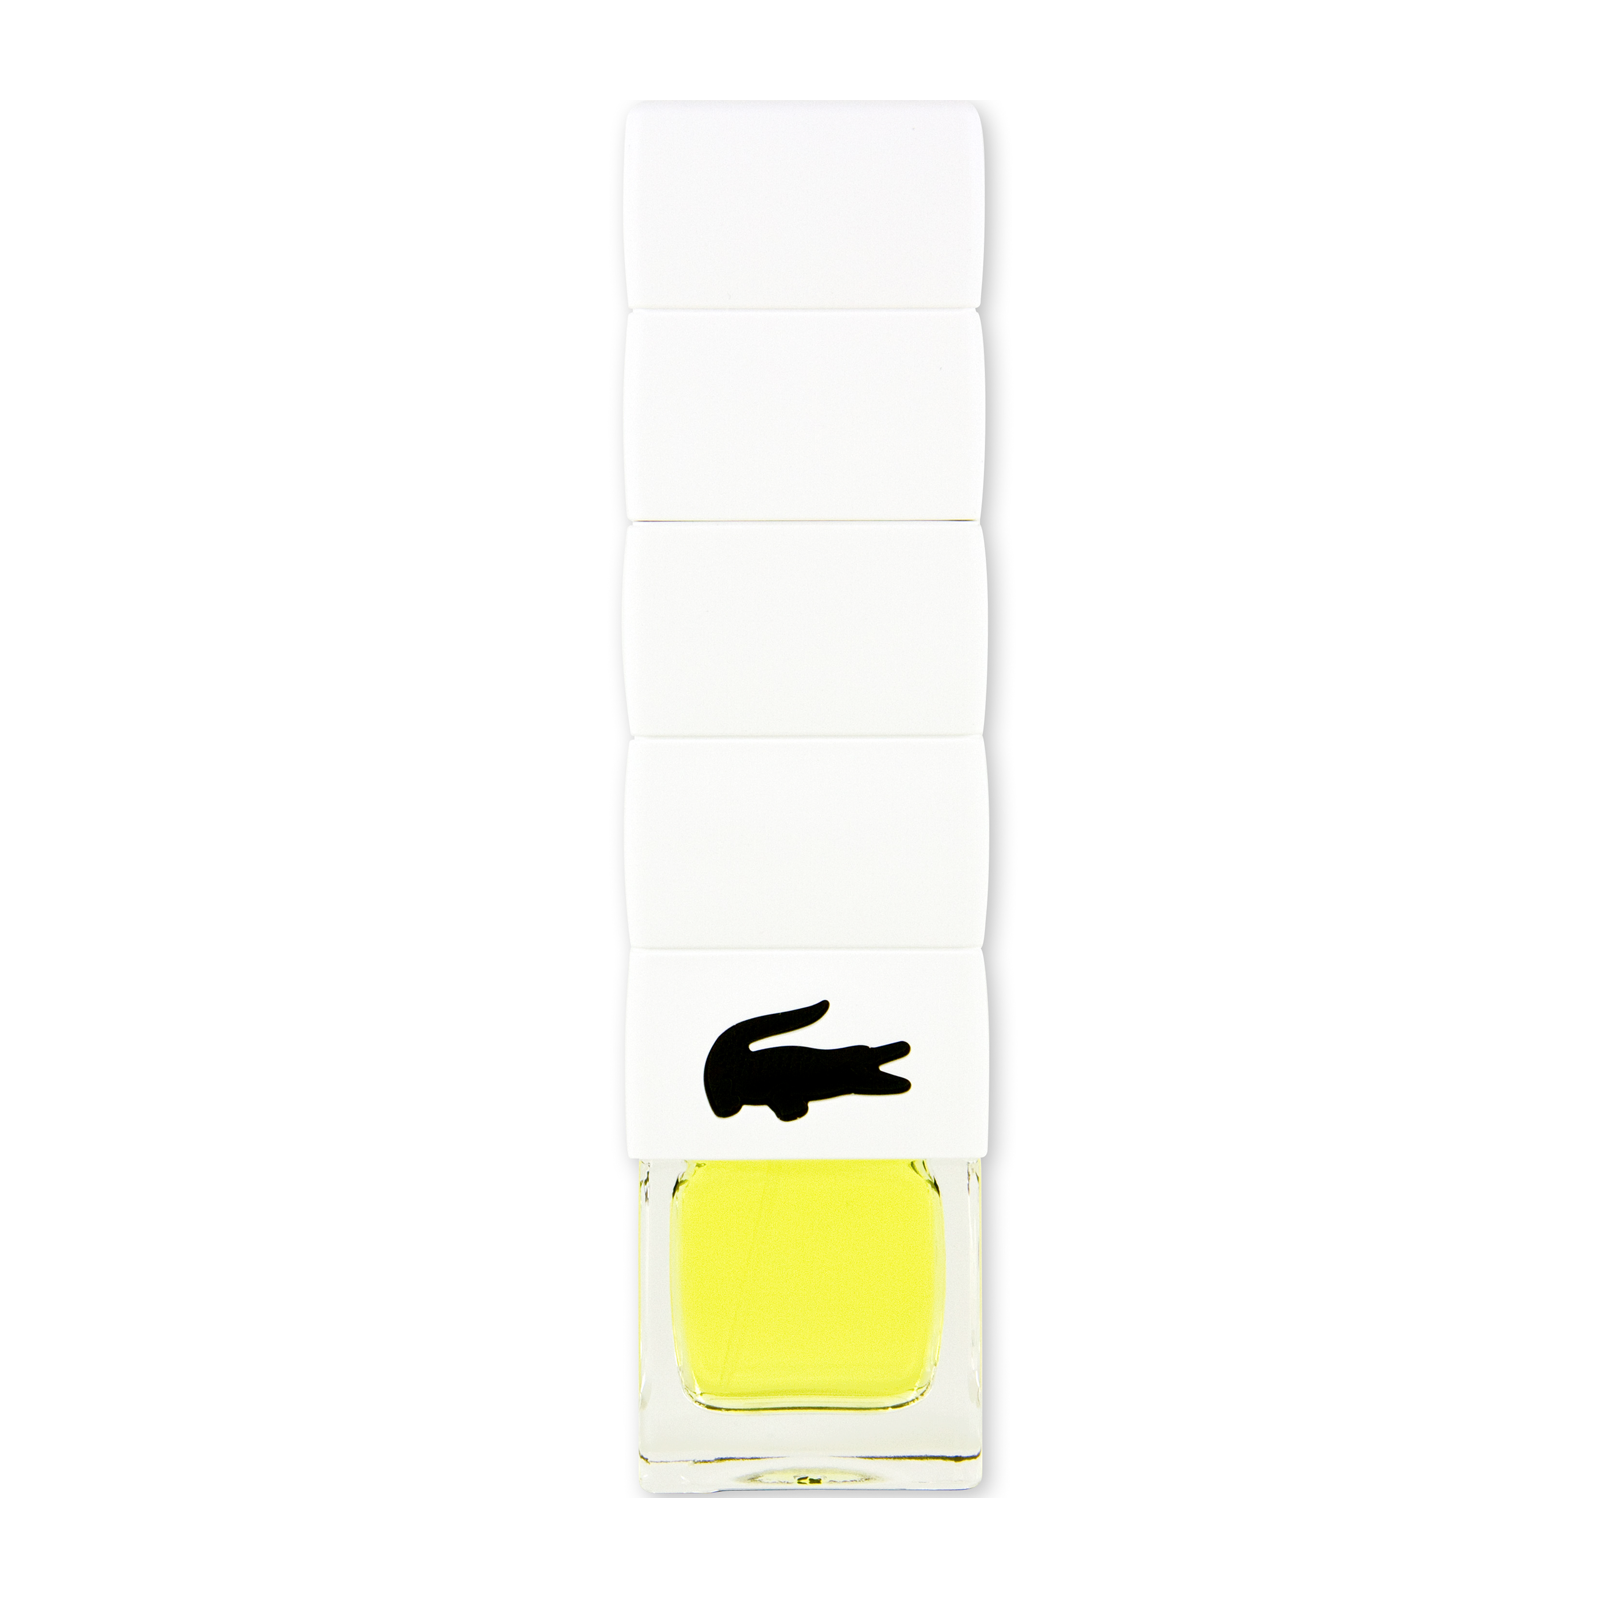 LACOSTE CHALLENGE REFRESH TESTER 3 OZ EDT SP